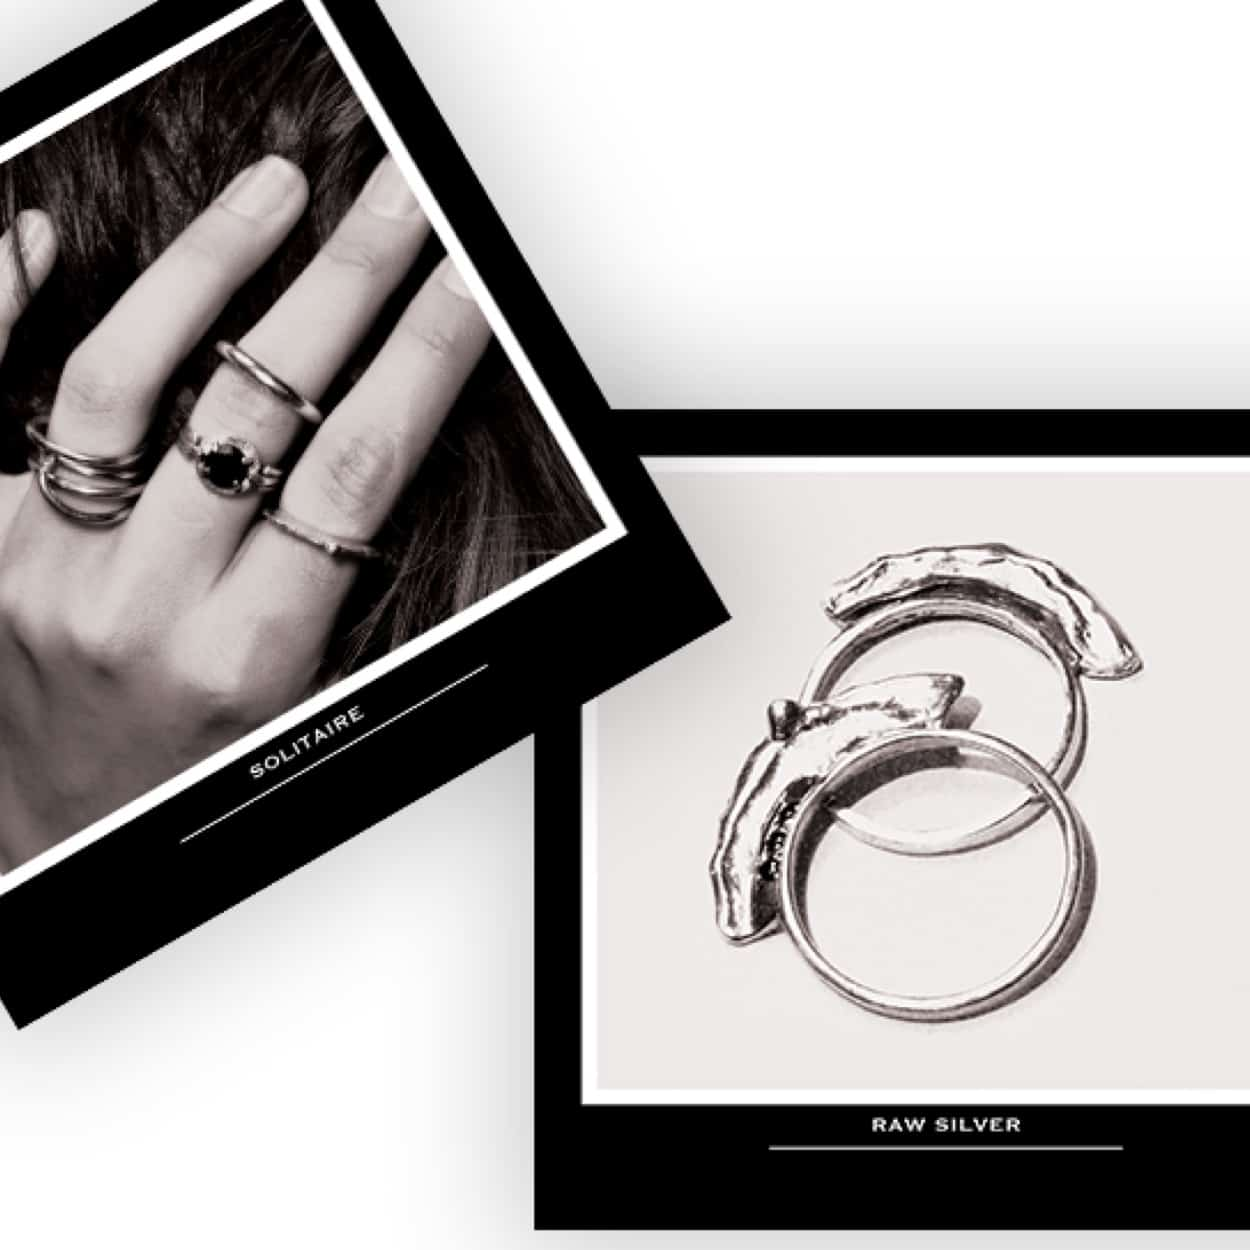 Let's Design Nadia Ornstein - Nefertiti Bat Kol - Jewellery designer Visual Branding